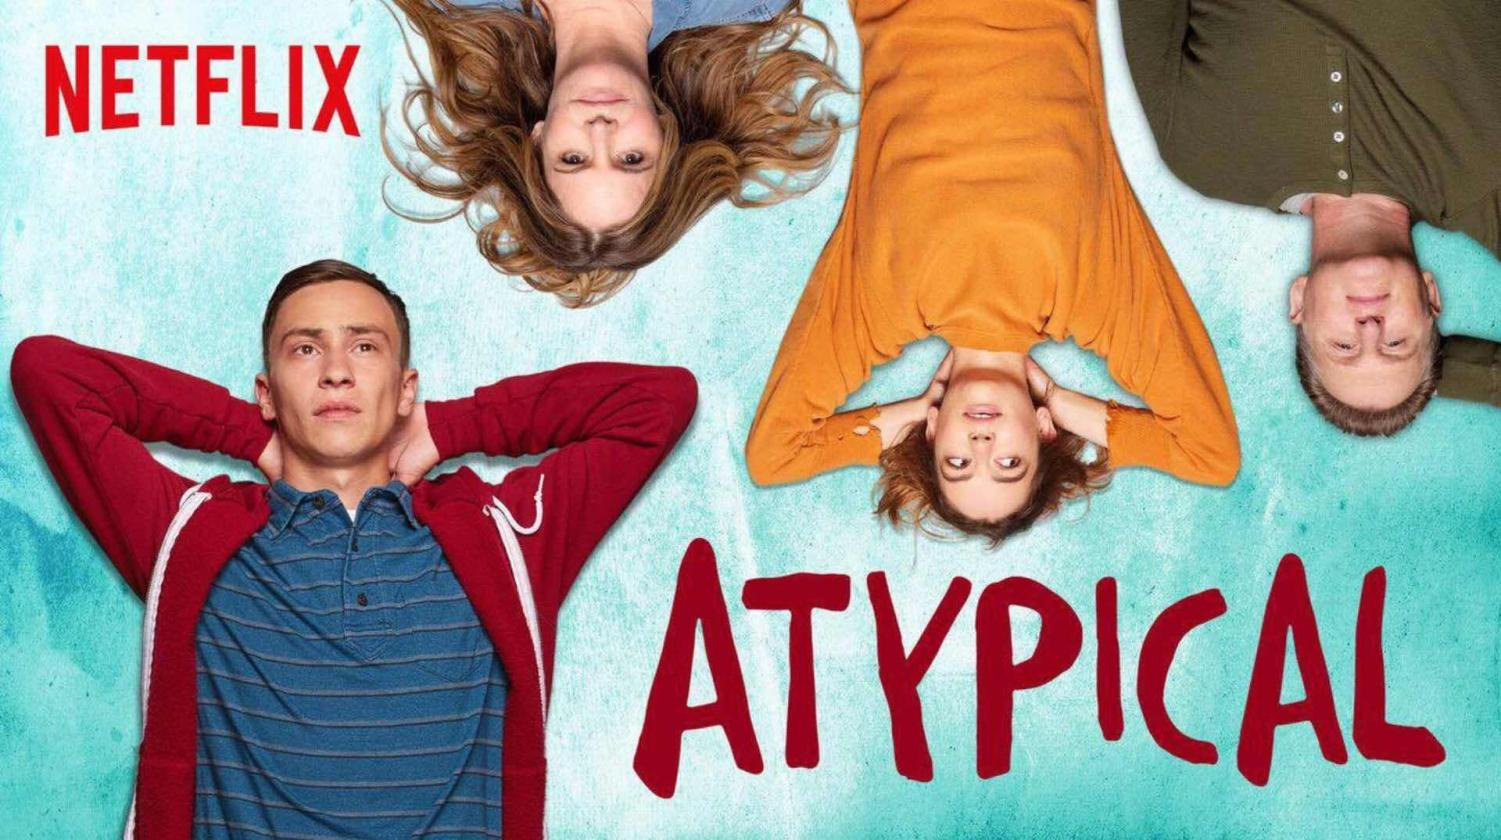 Netflix's Atypical follows Sam, a teenage boy with autism as he starts his first year of  college. He faces many challenges throughout the show and has to find ways on his own to solve them. Sam has to interact with other college students, keep relationships, become independent and more.